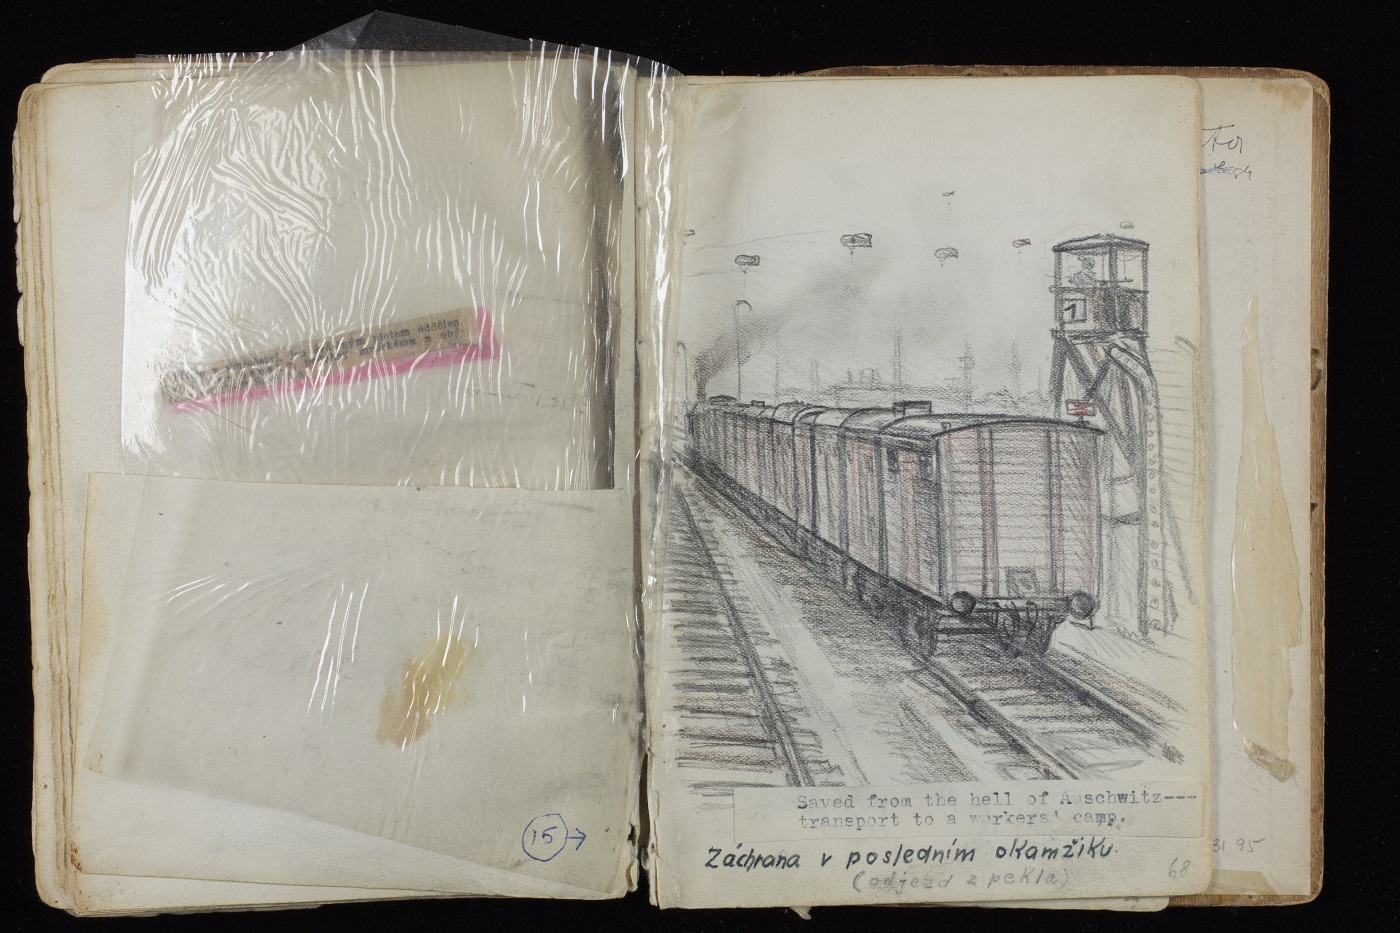 Open page of Alfred Kantor's sketchbook featuring train car and guard tower